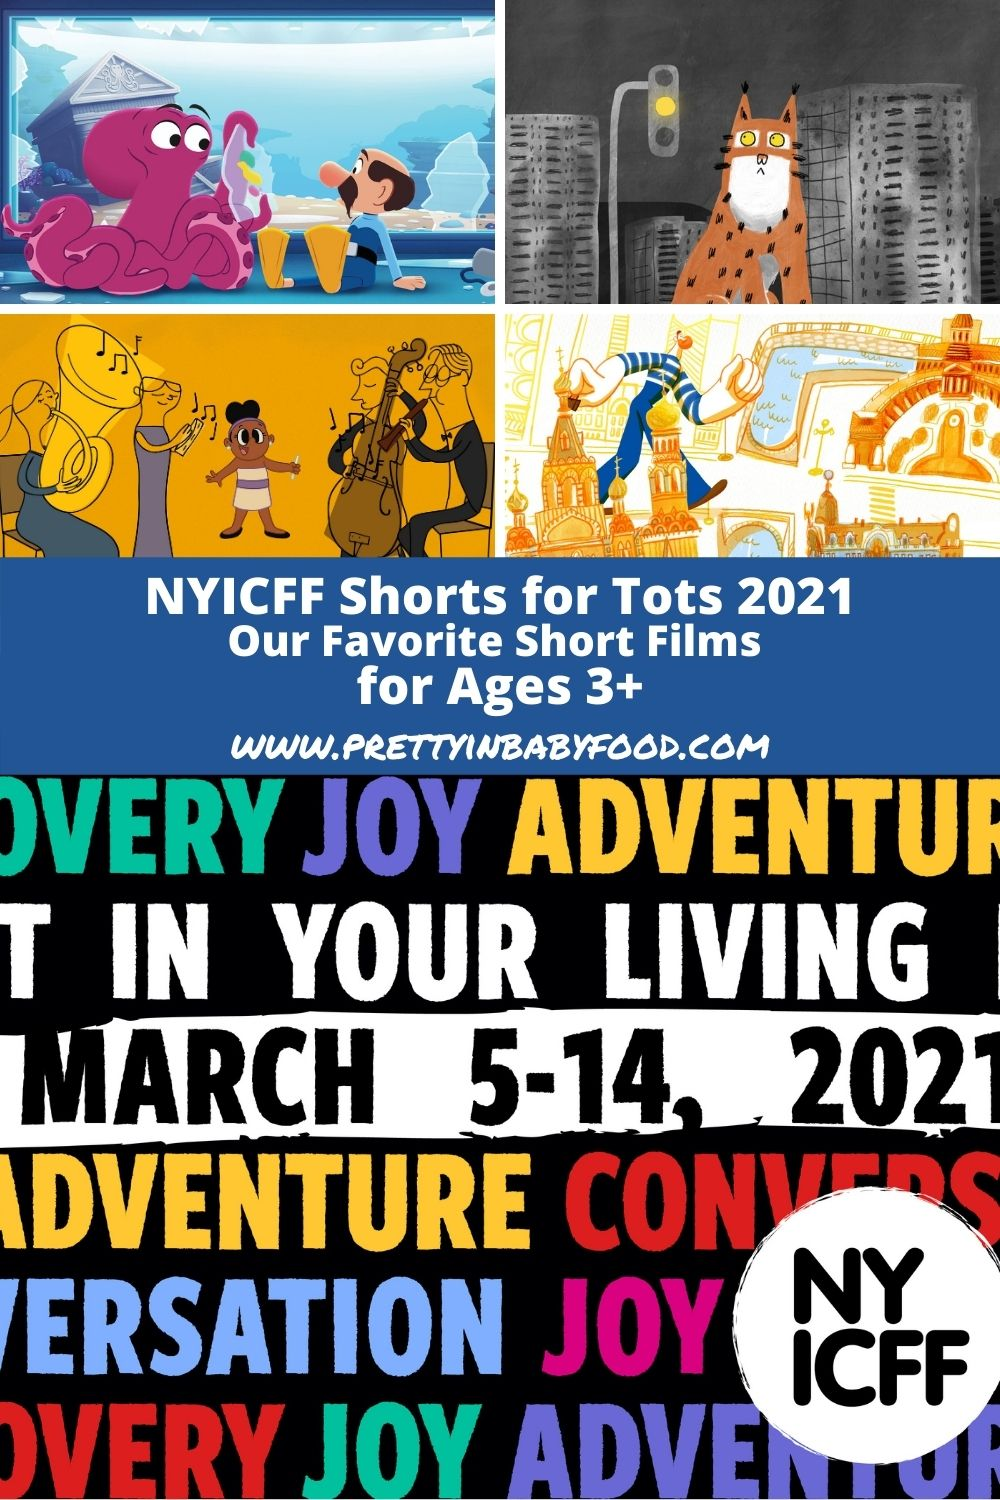 NYICFF Shorts for Tots 2021: Our Favorite Short Films for Ages 3+